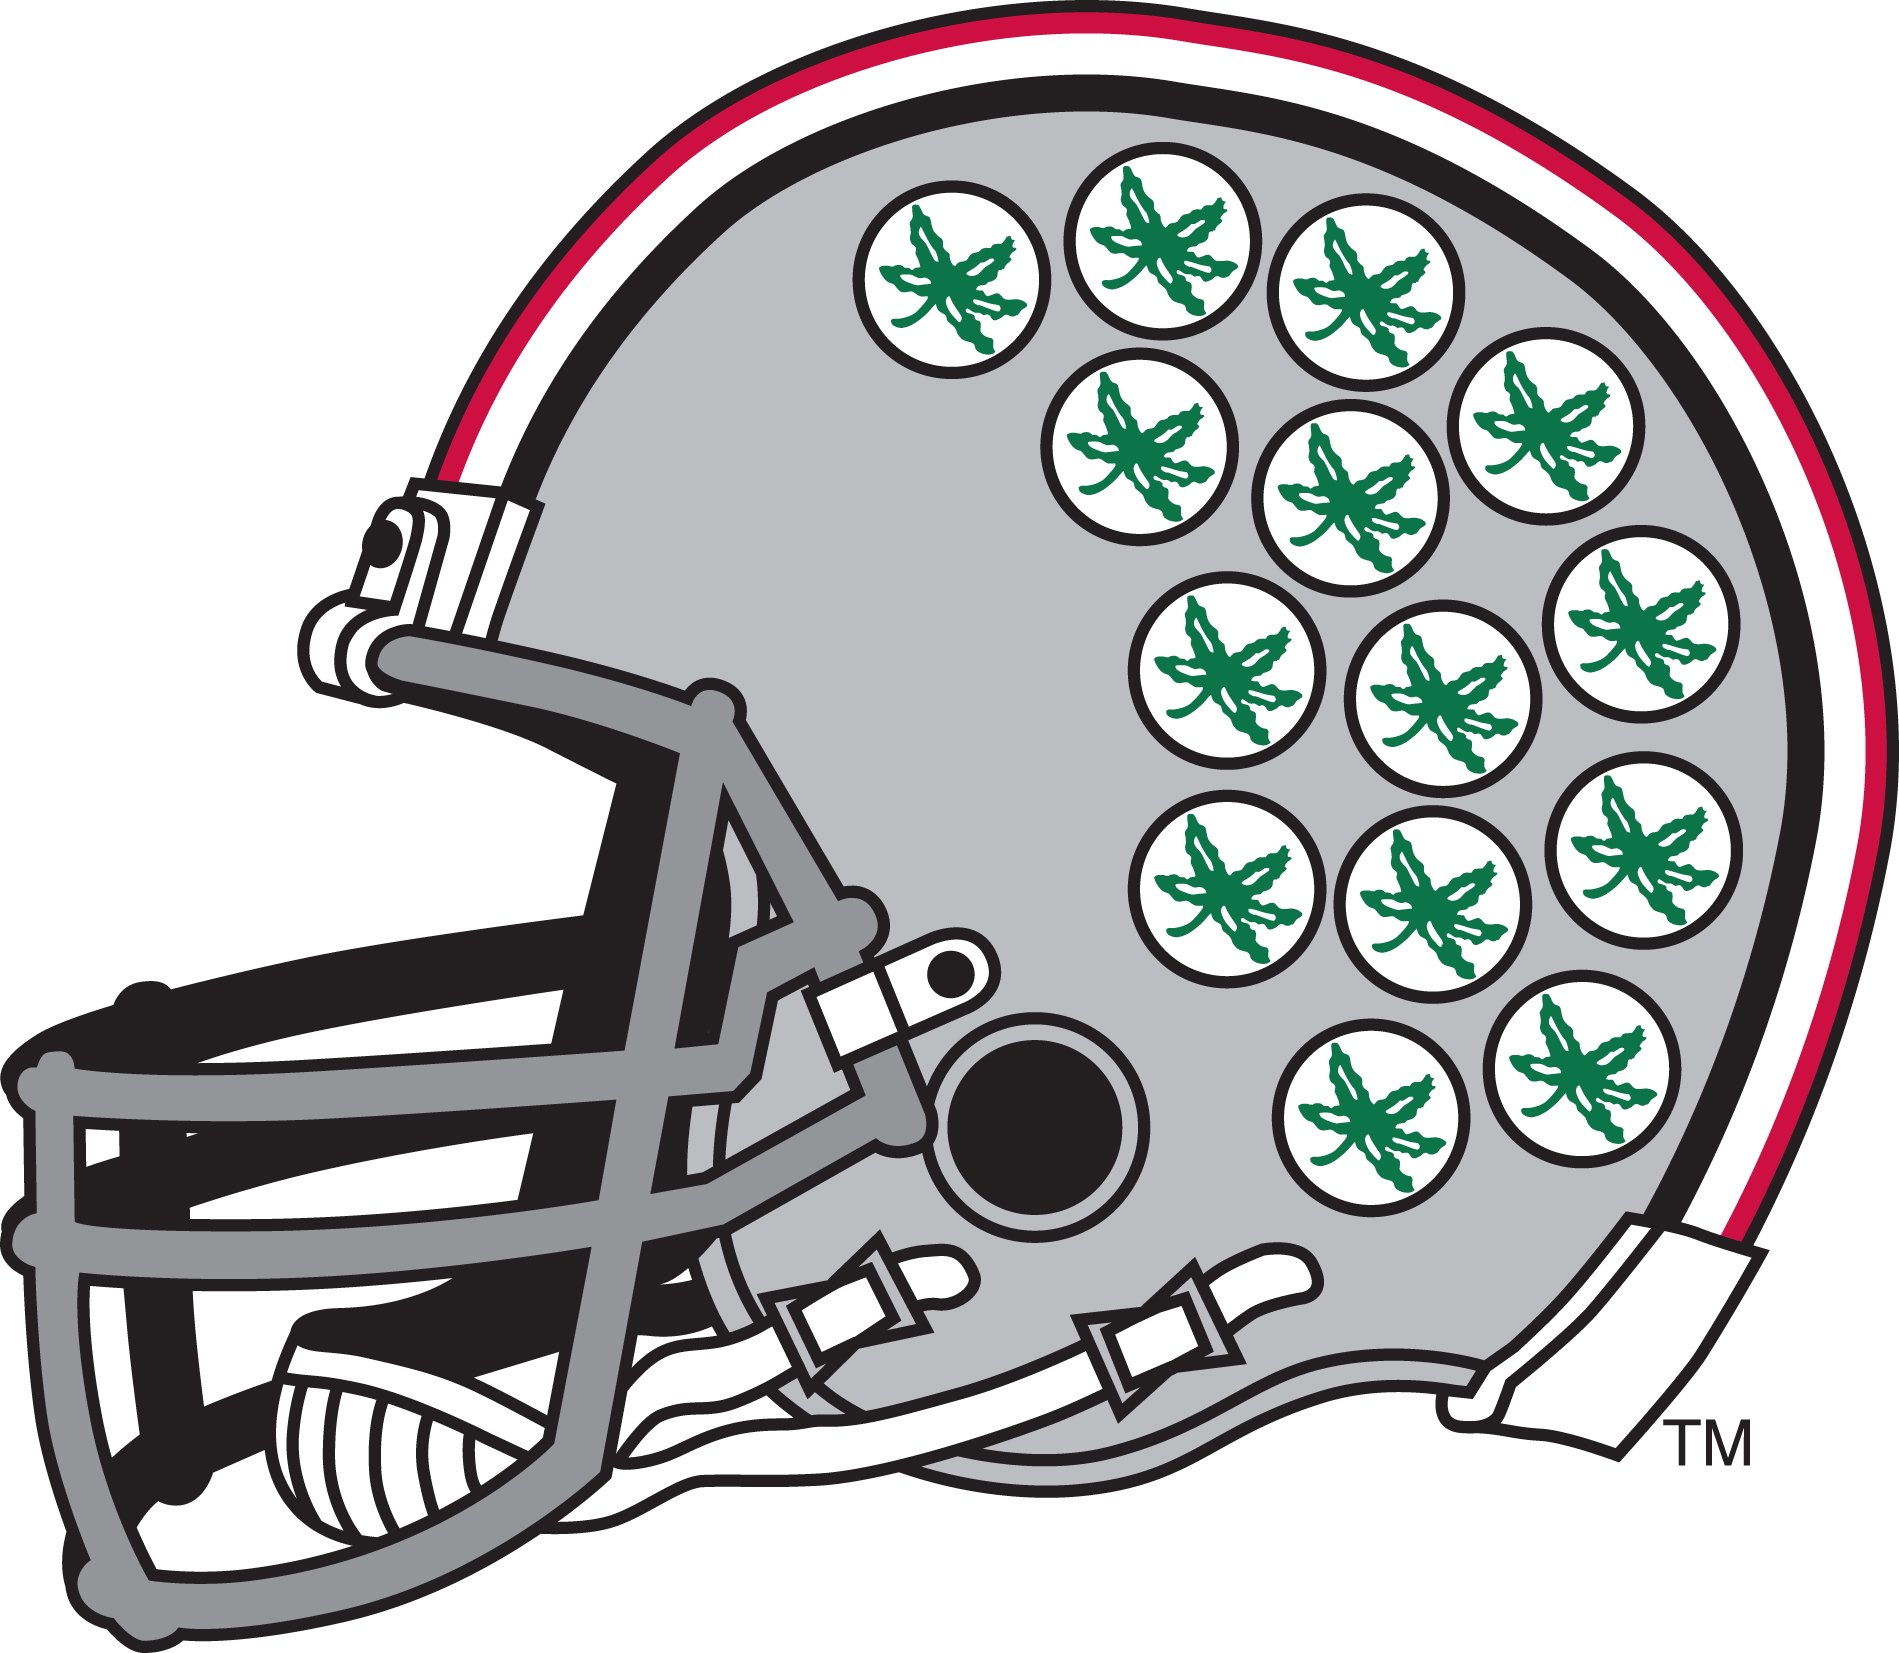 Ohio state football clipart clipart library library Use Ohio State Emojis to root for the Buckeyes on their quest to the ... clipart library library